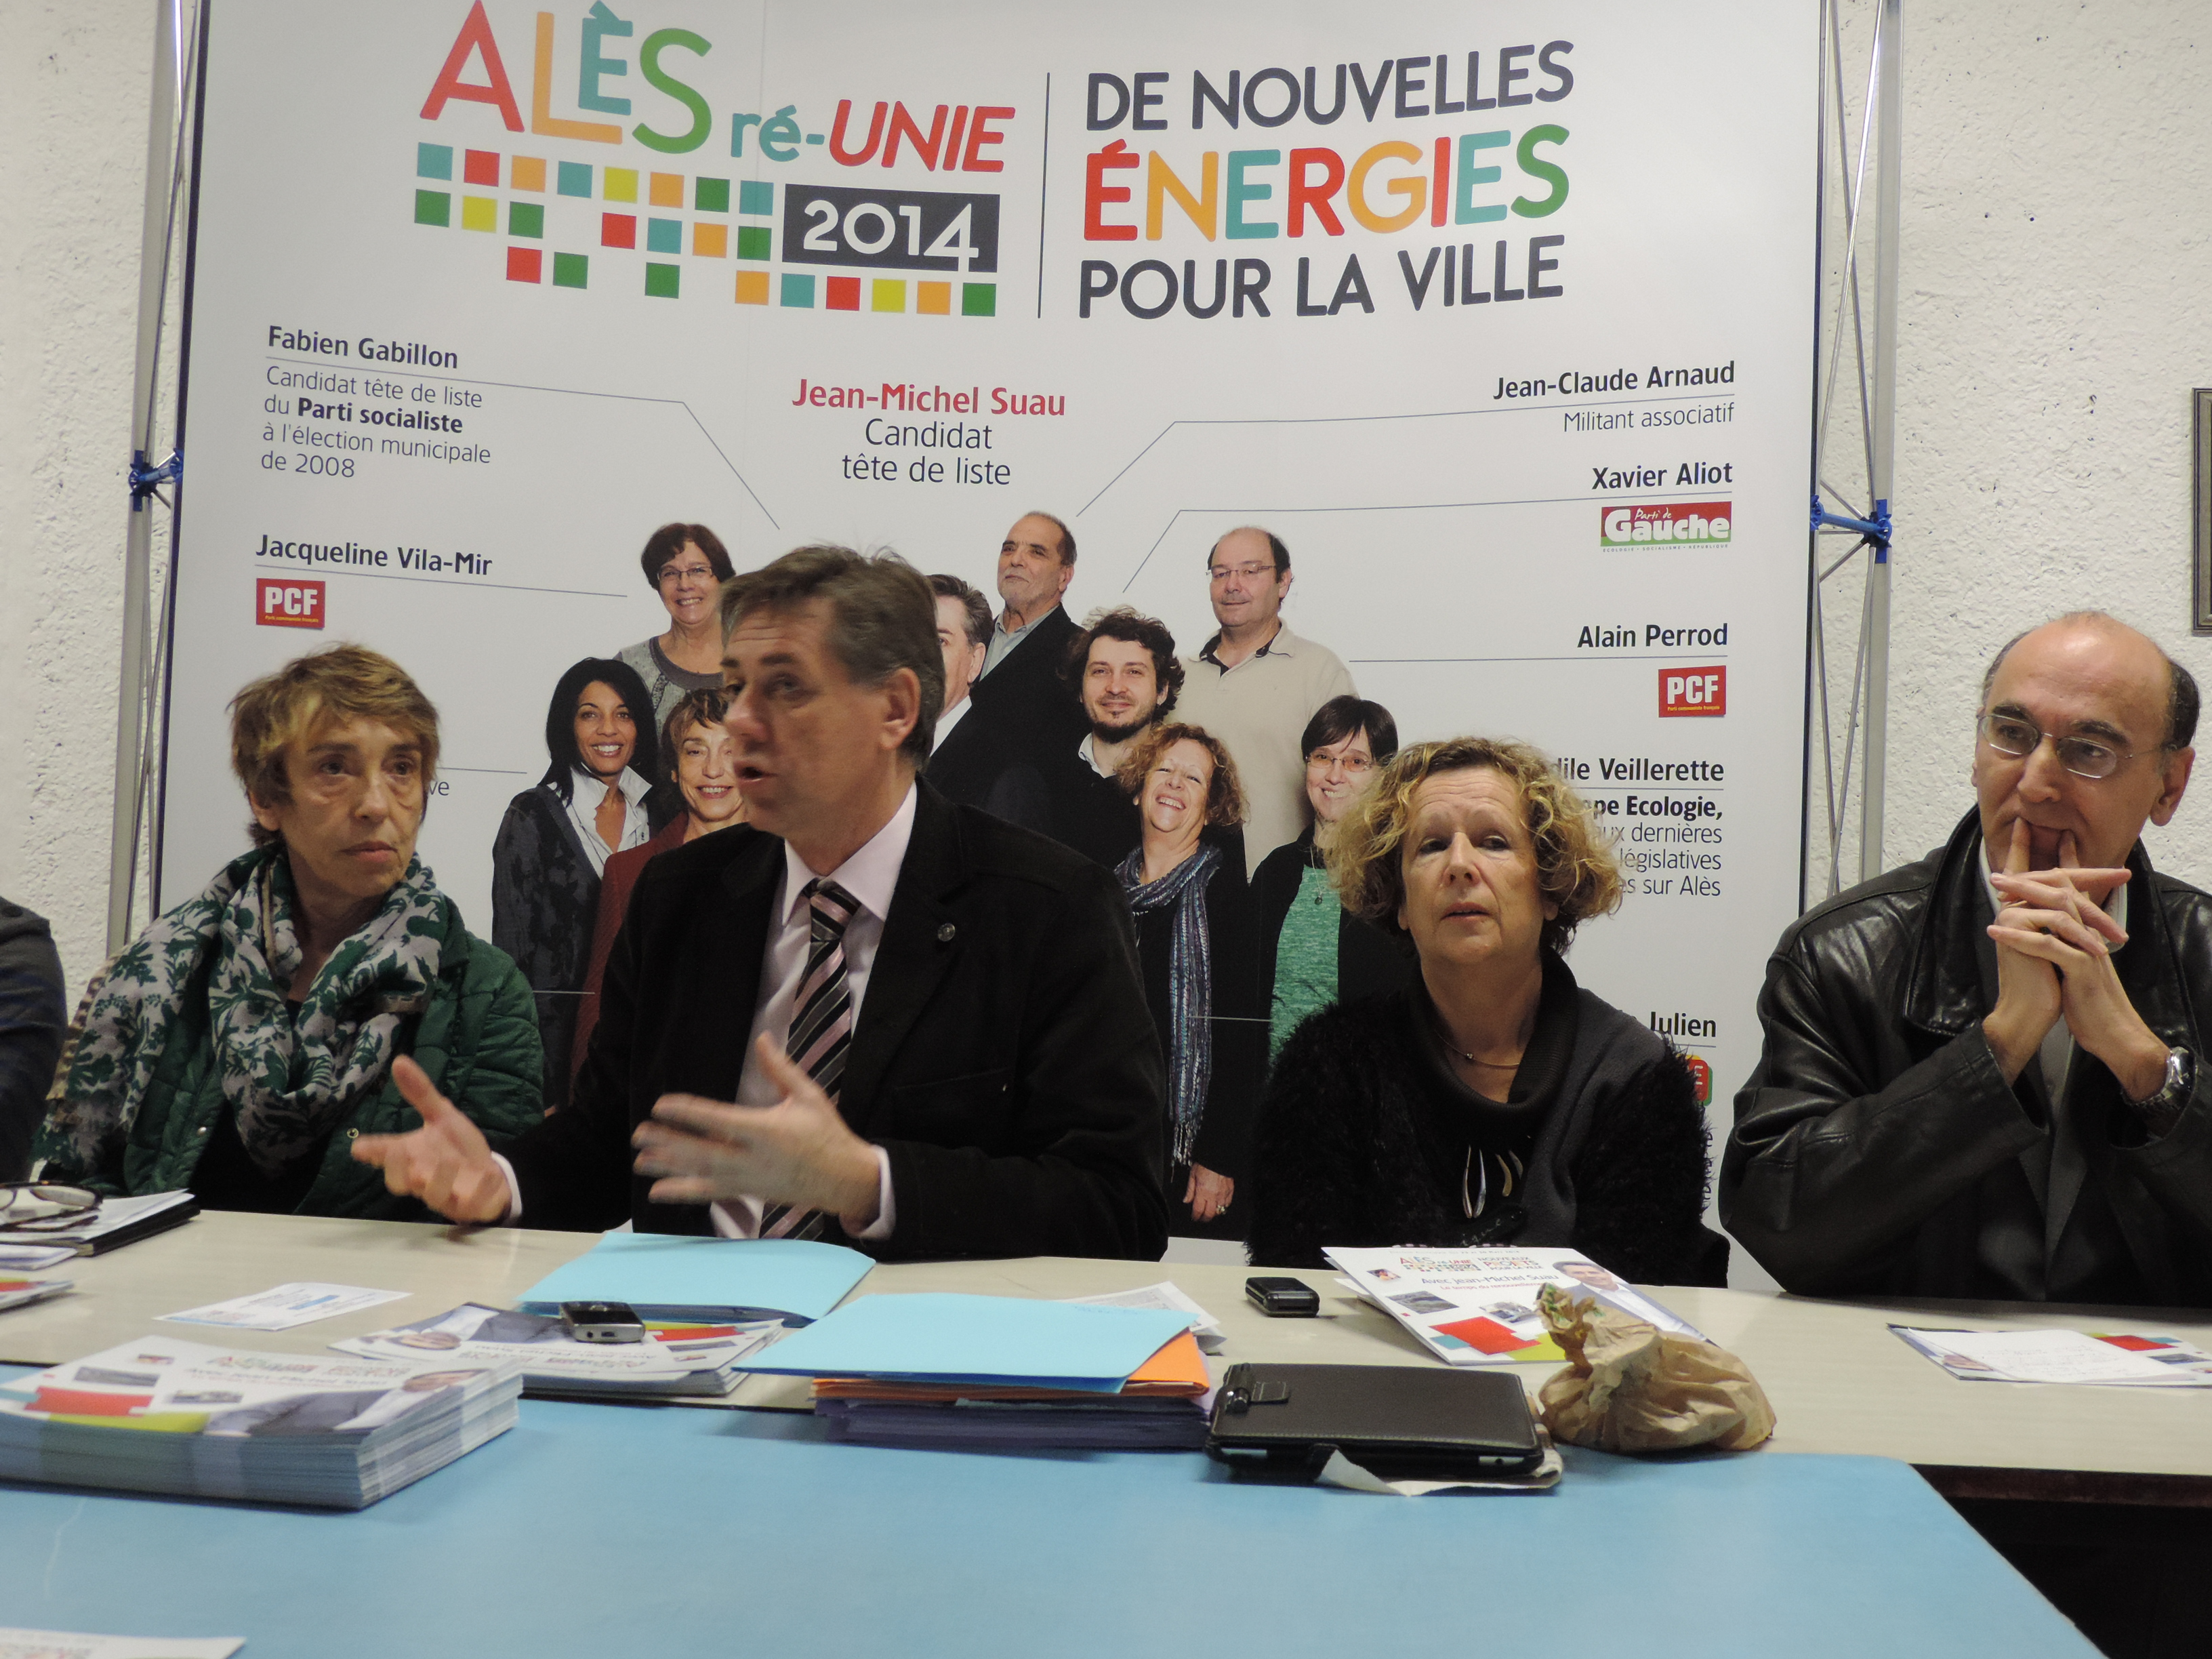 Photo of MUNICIPALES Alès Ré-Unie. Demandez le programme à gauche !